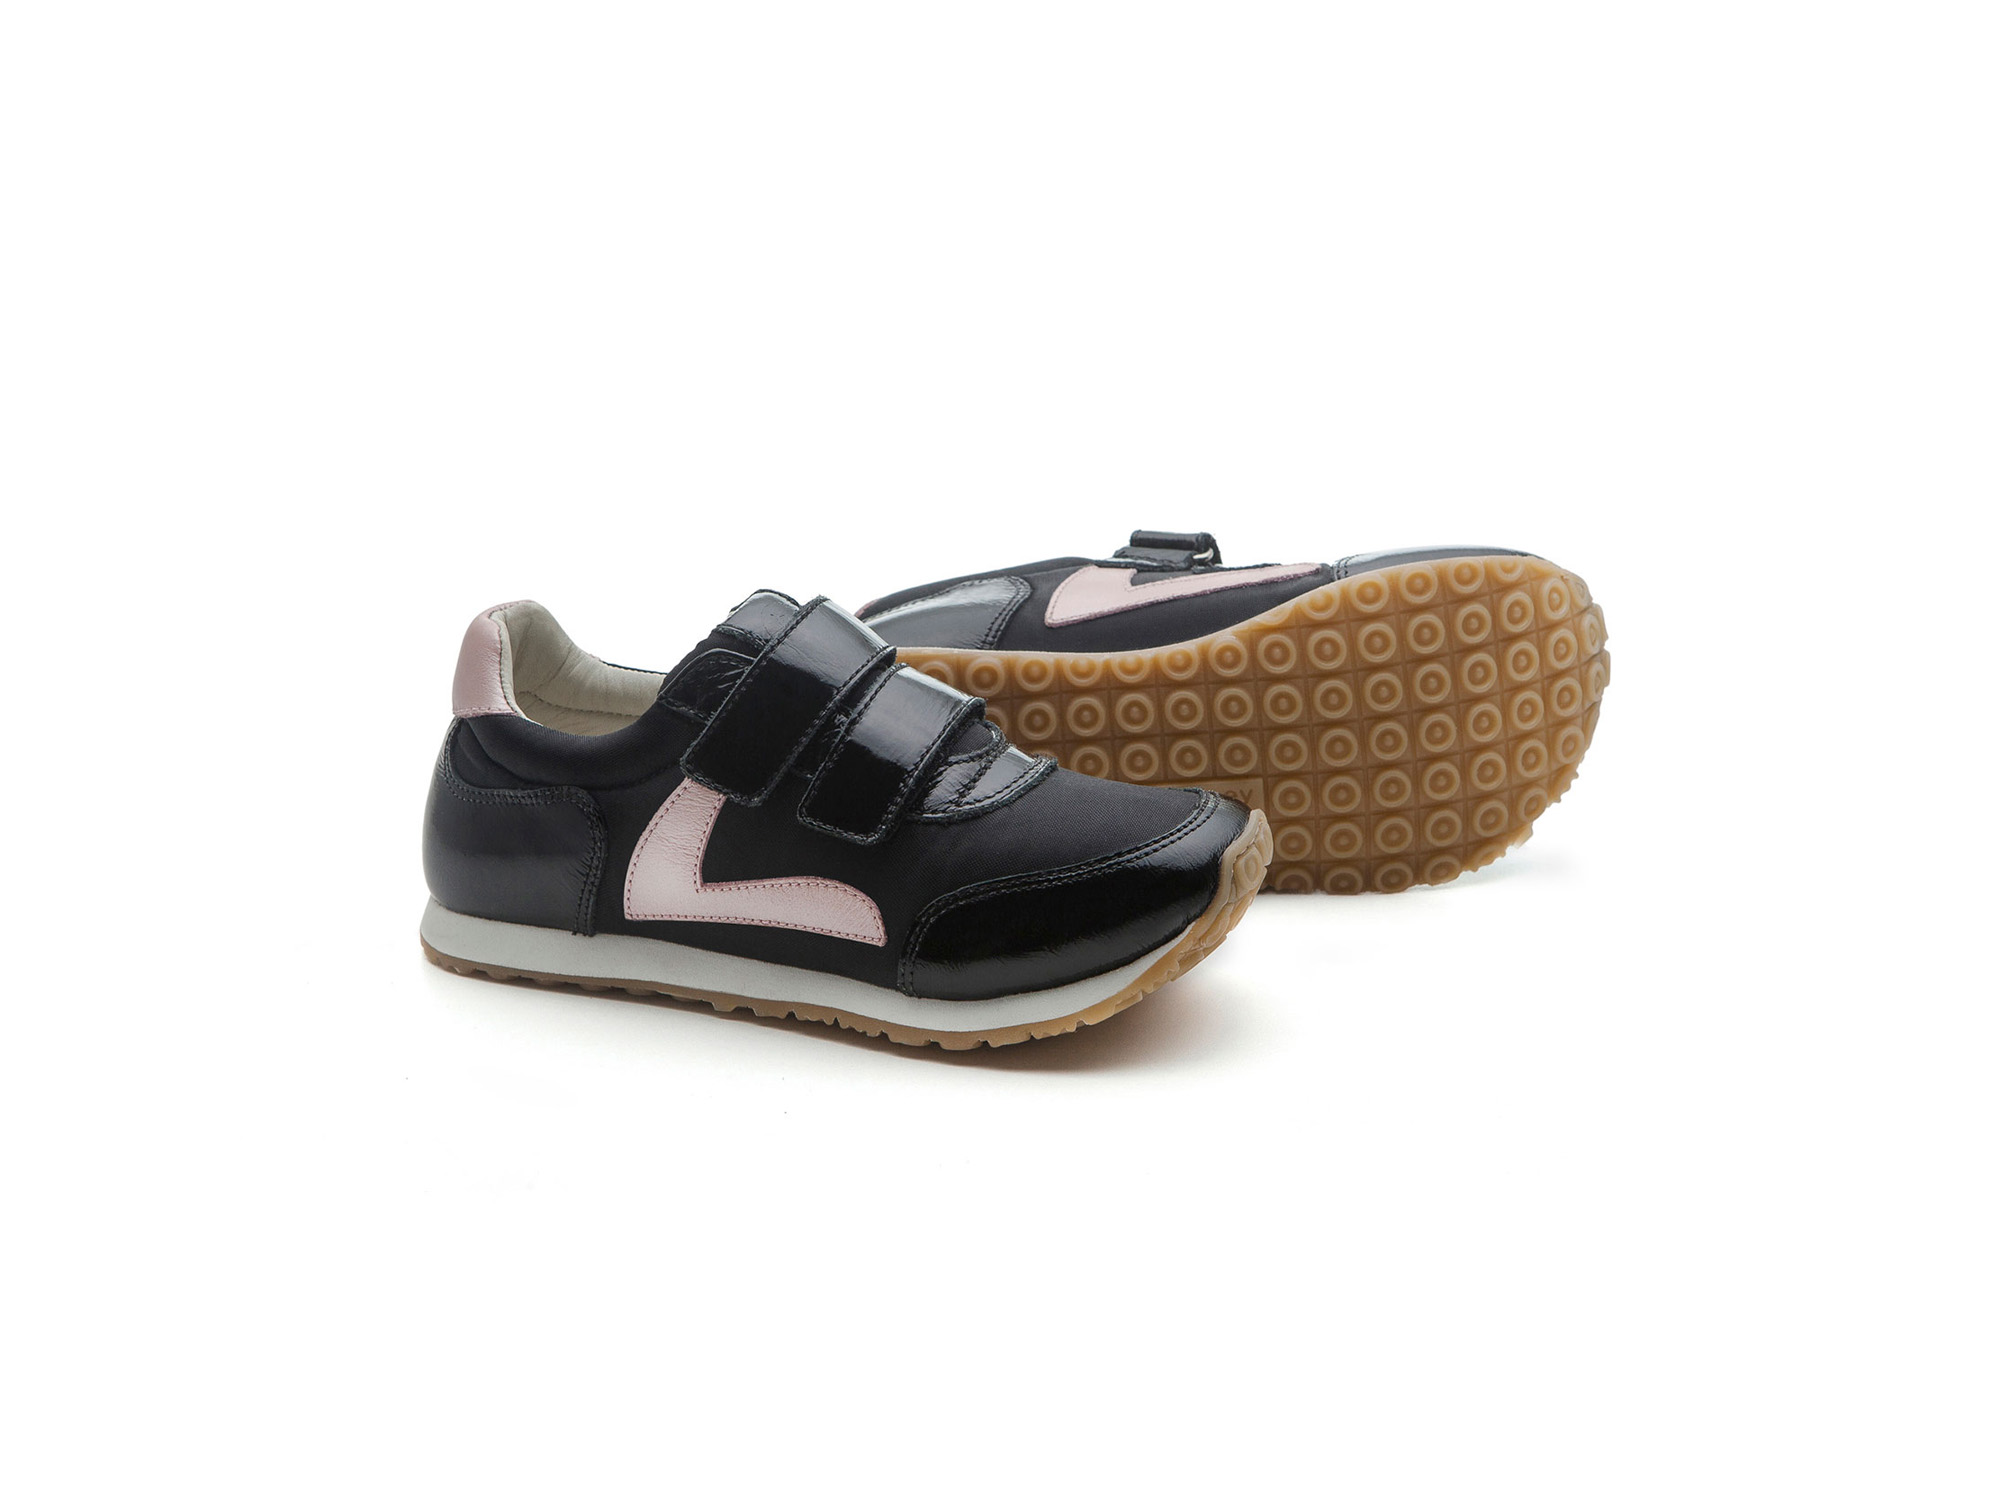 Tênis Jump Black Nylon/ Patent Black Junior 4 à 8 anos - 1